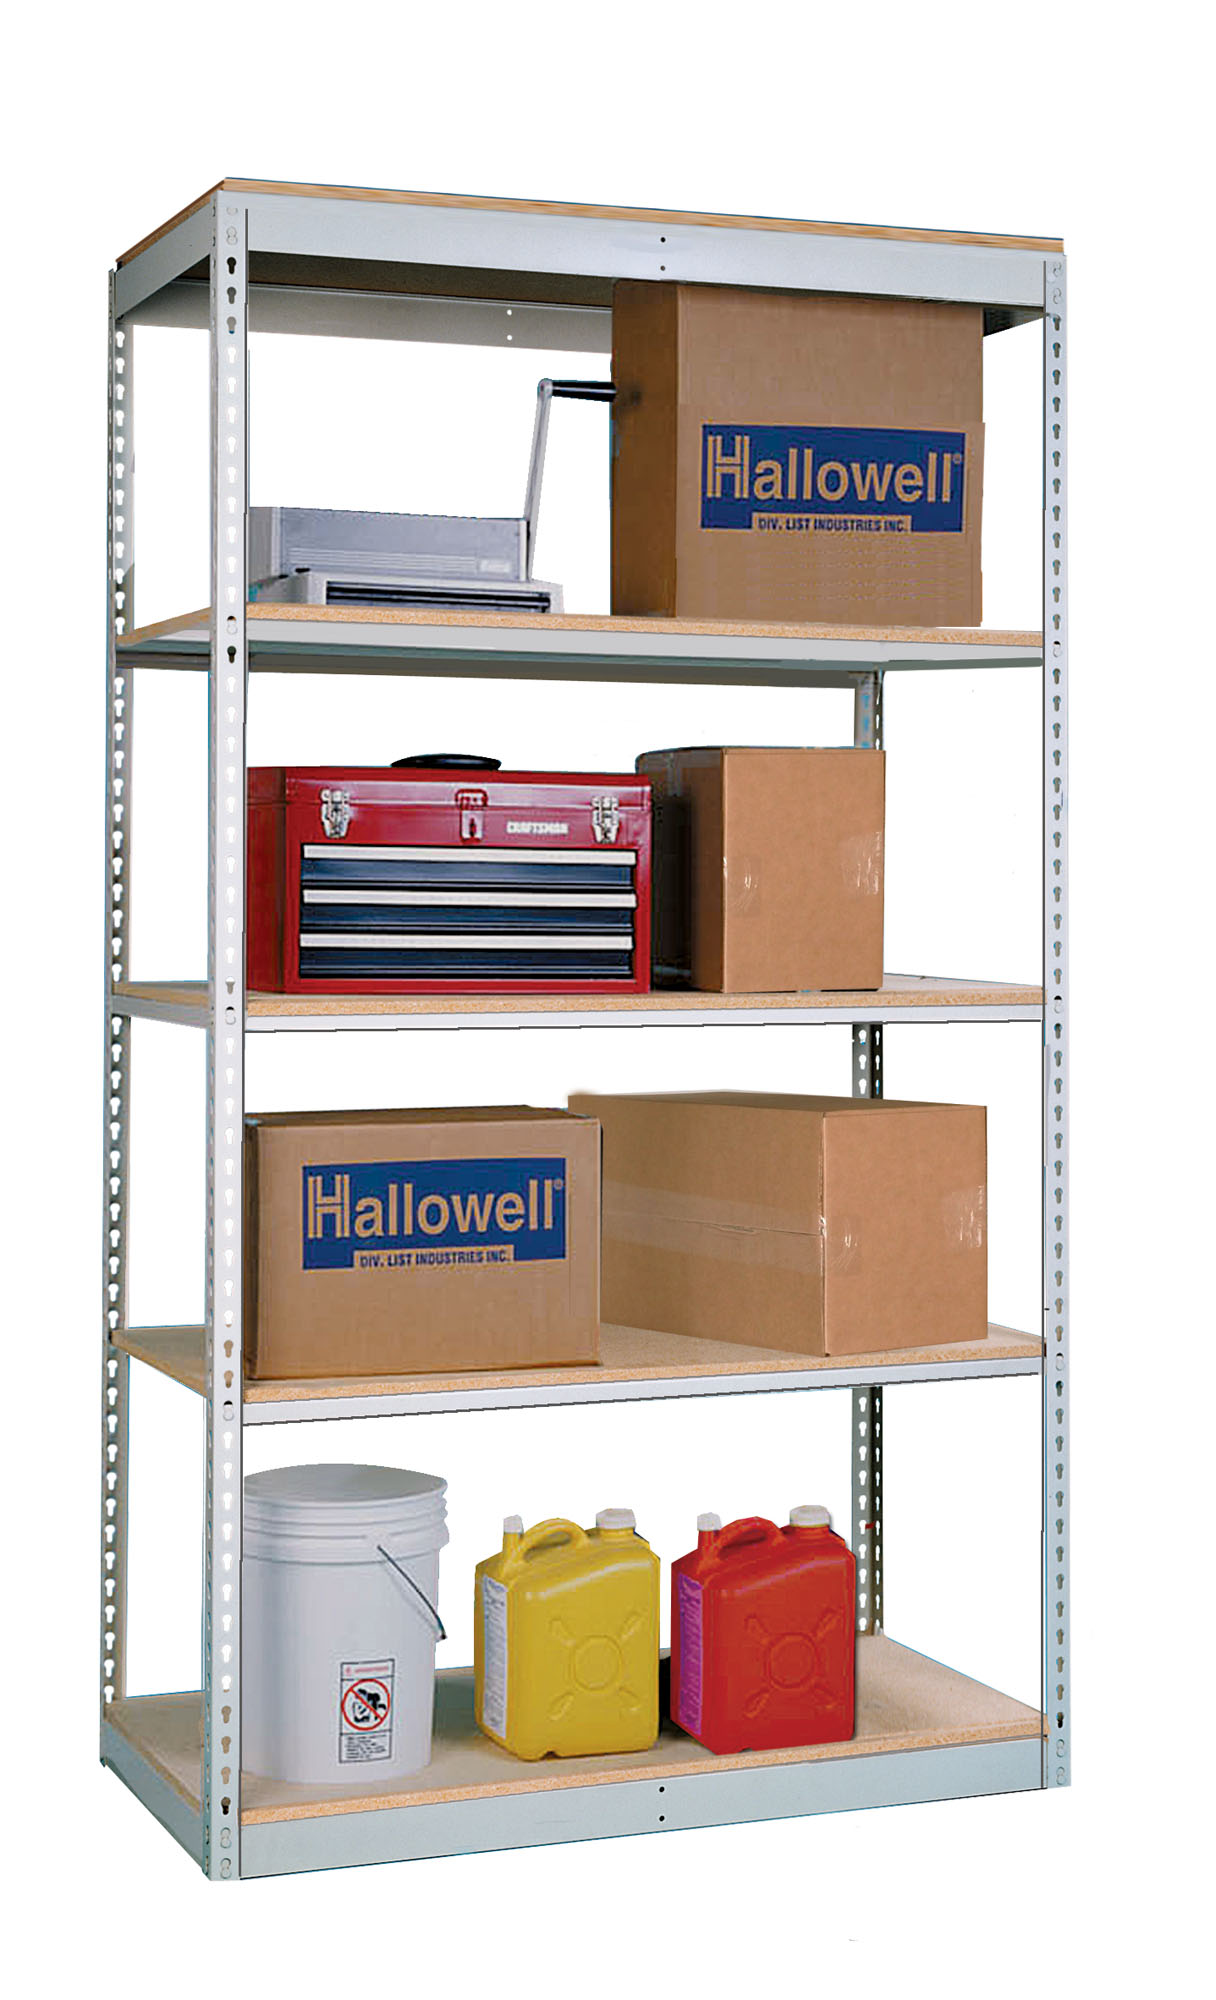 Rivetwell Boltless Shelving With Single Rivet Beams, shown in use